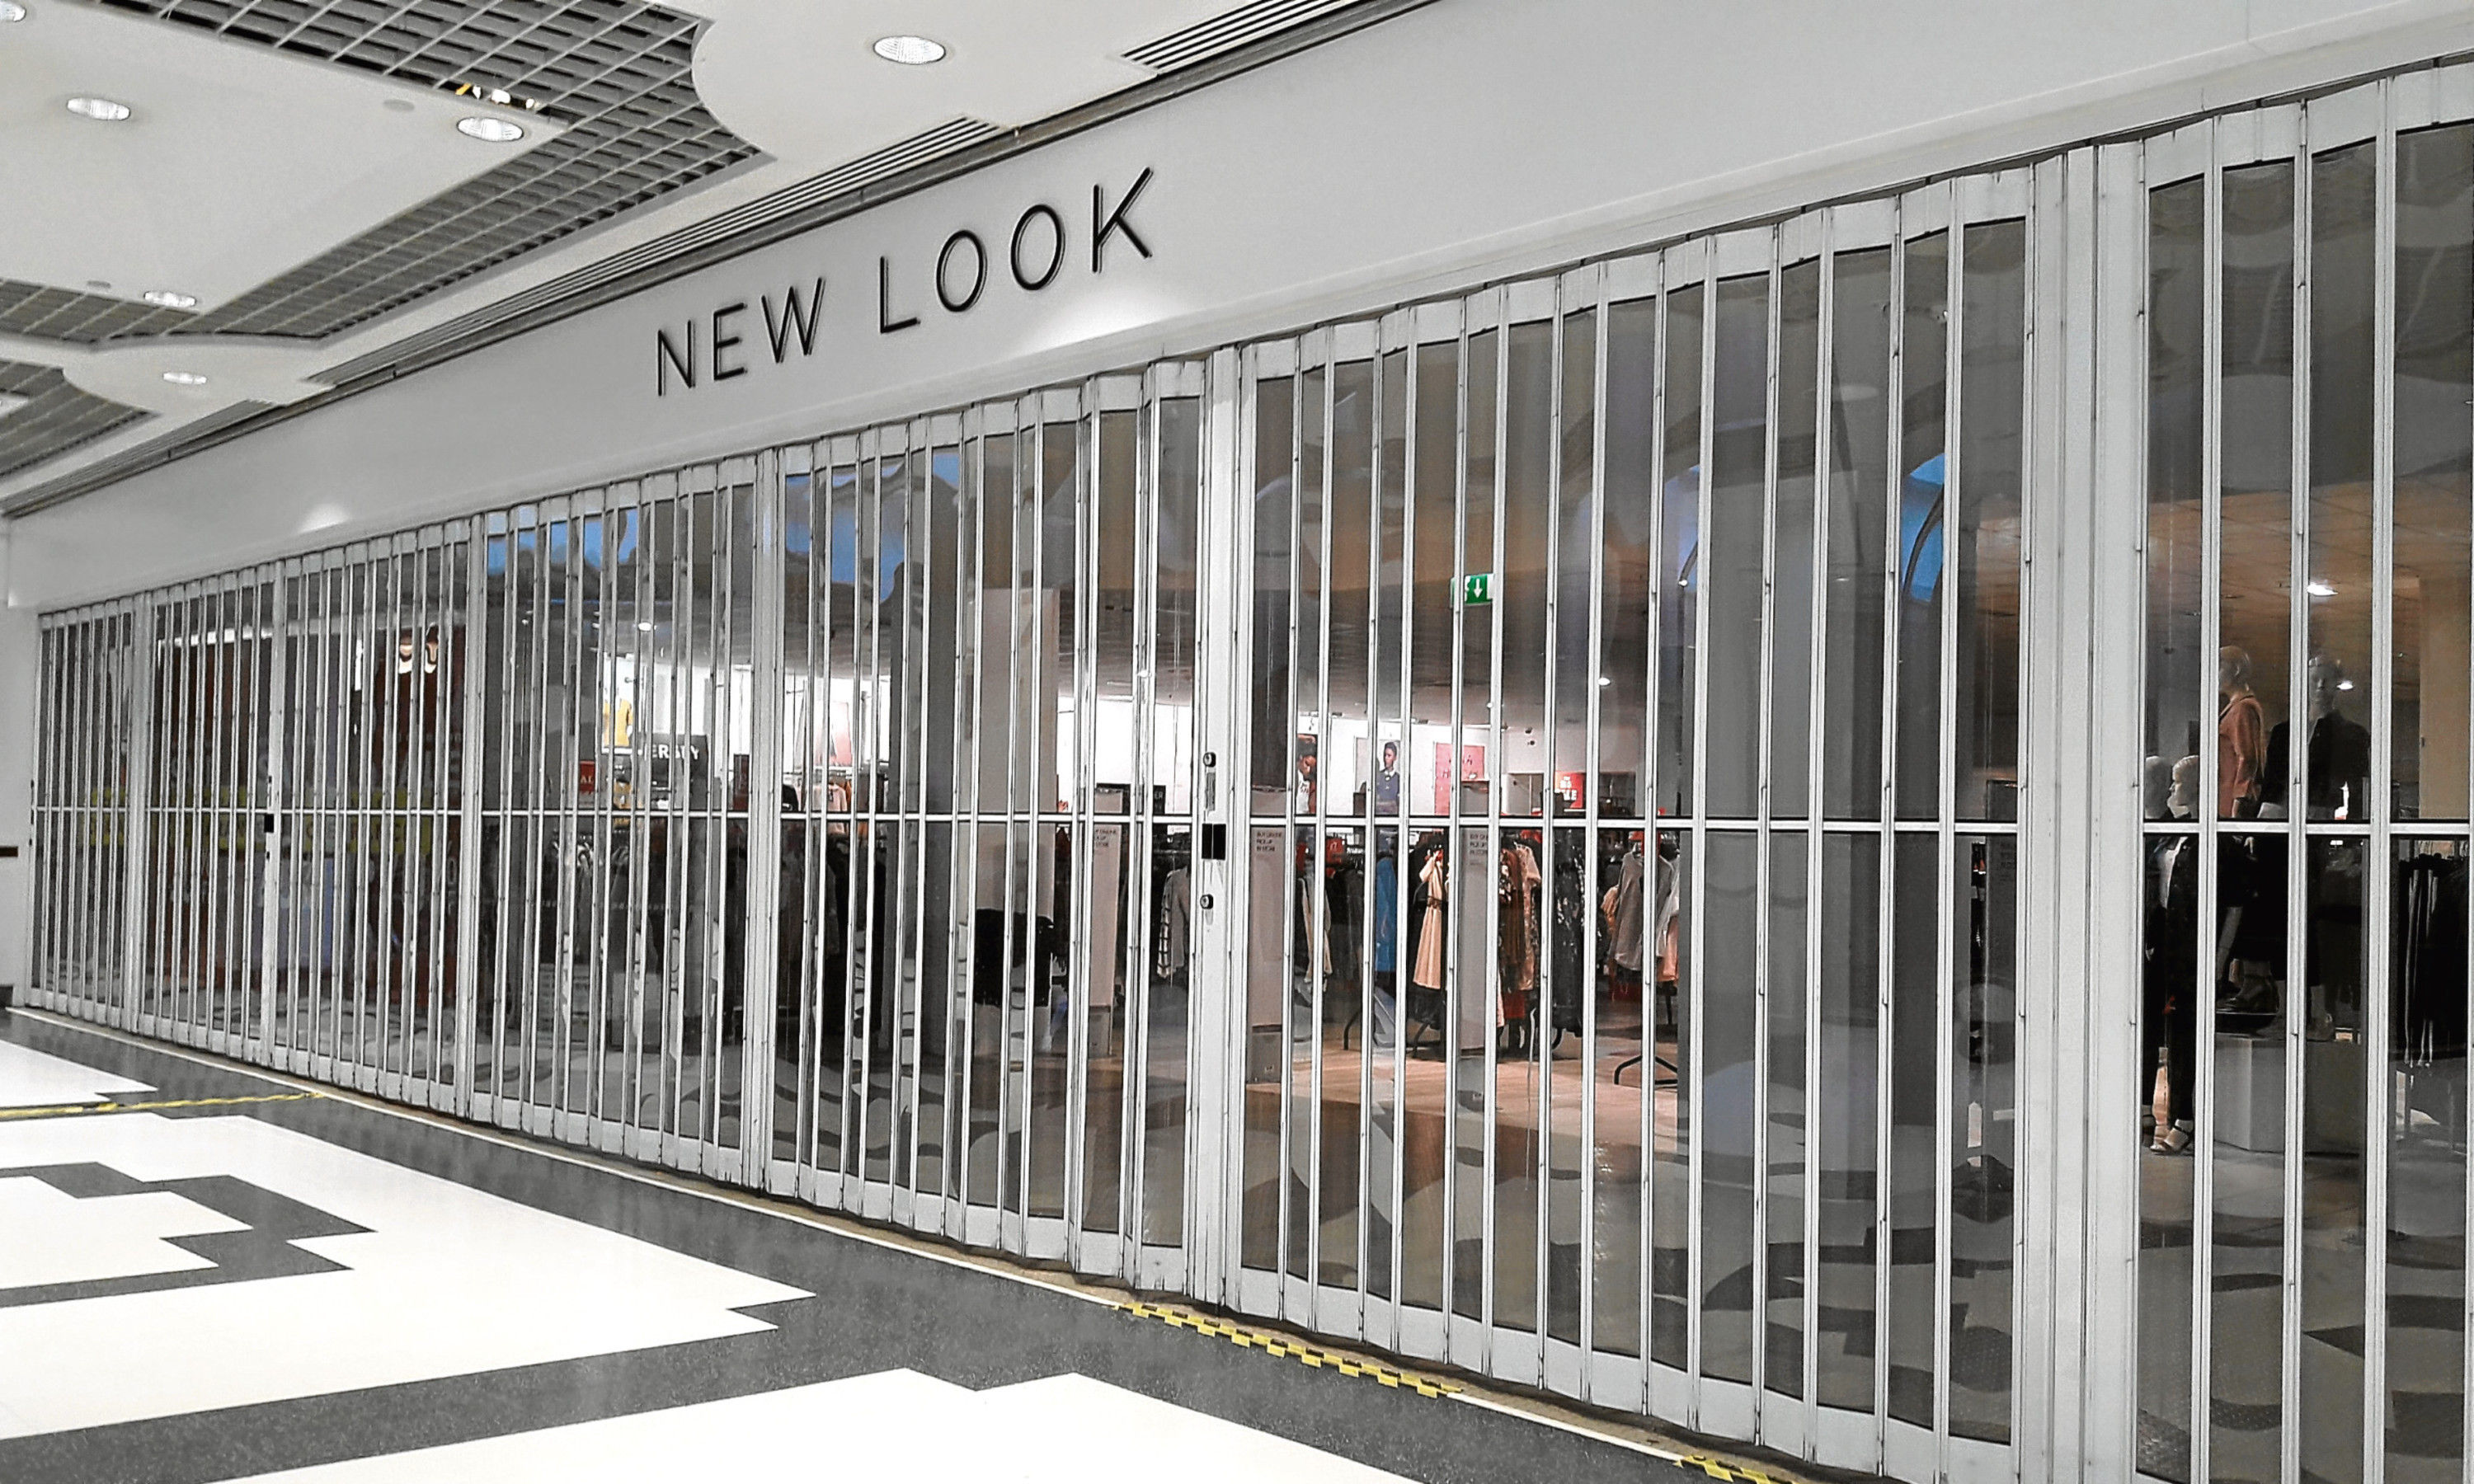 New Look announced last month that its store in Dundee's Wellgate shopping centre is to close.